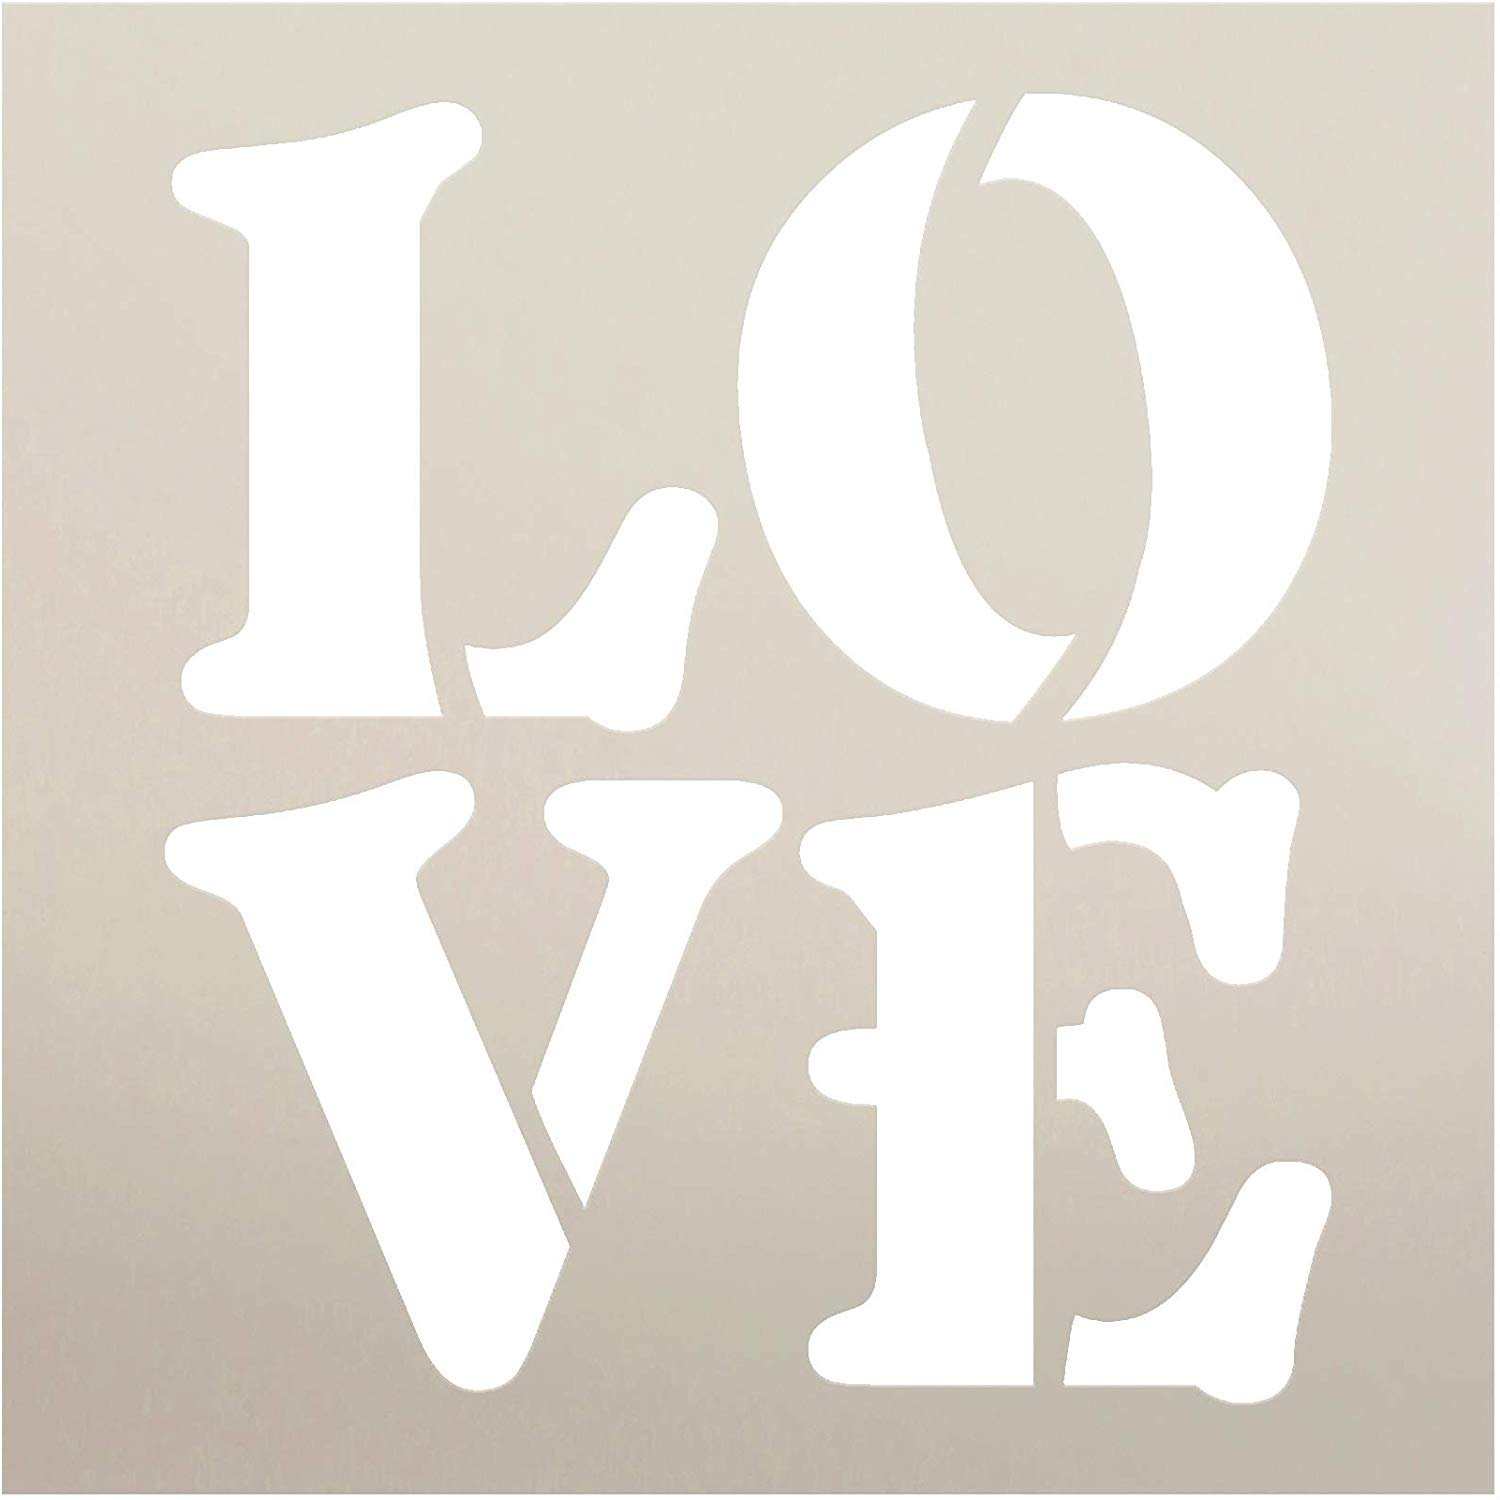 L-O-V-E Stencil by StudioR12 | DIY Simple Valentine's Day Home Decor | Vintage Farmhouse Love Letter Word Art | Craft & Paint Wood Signs | Reusable Mylar Template | Select Size